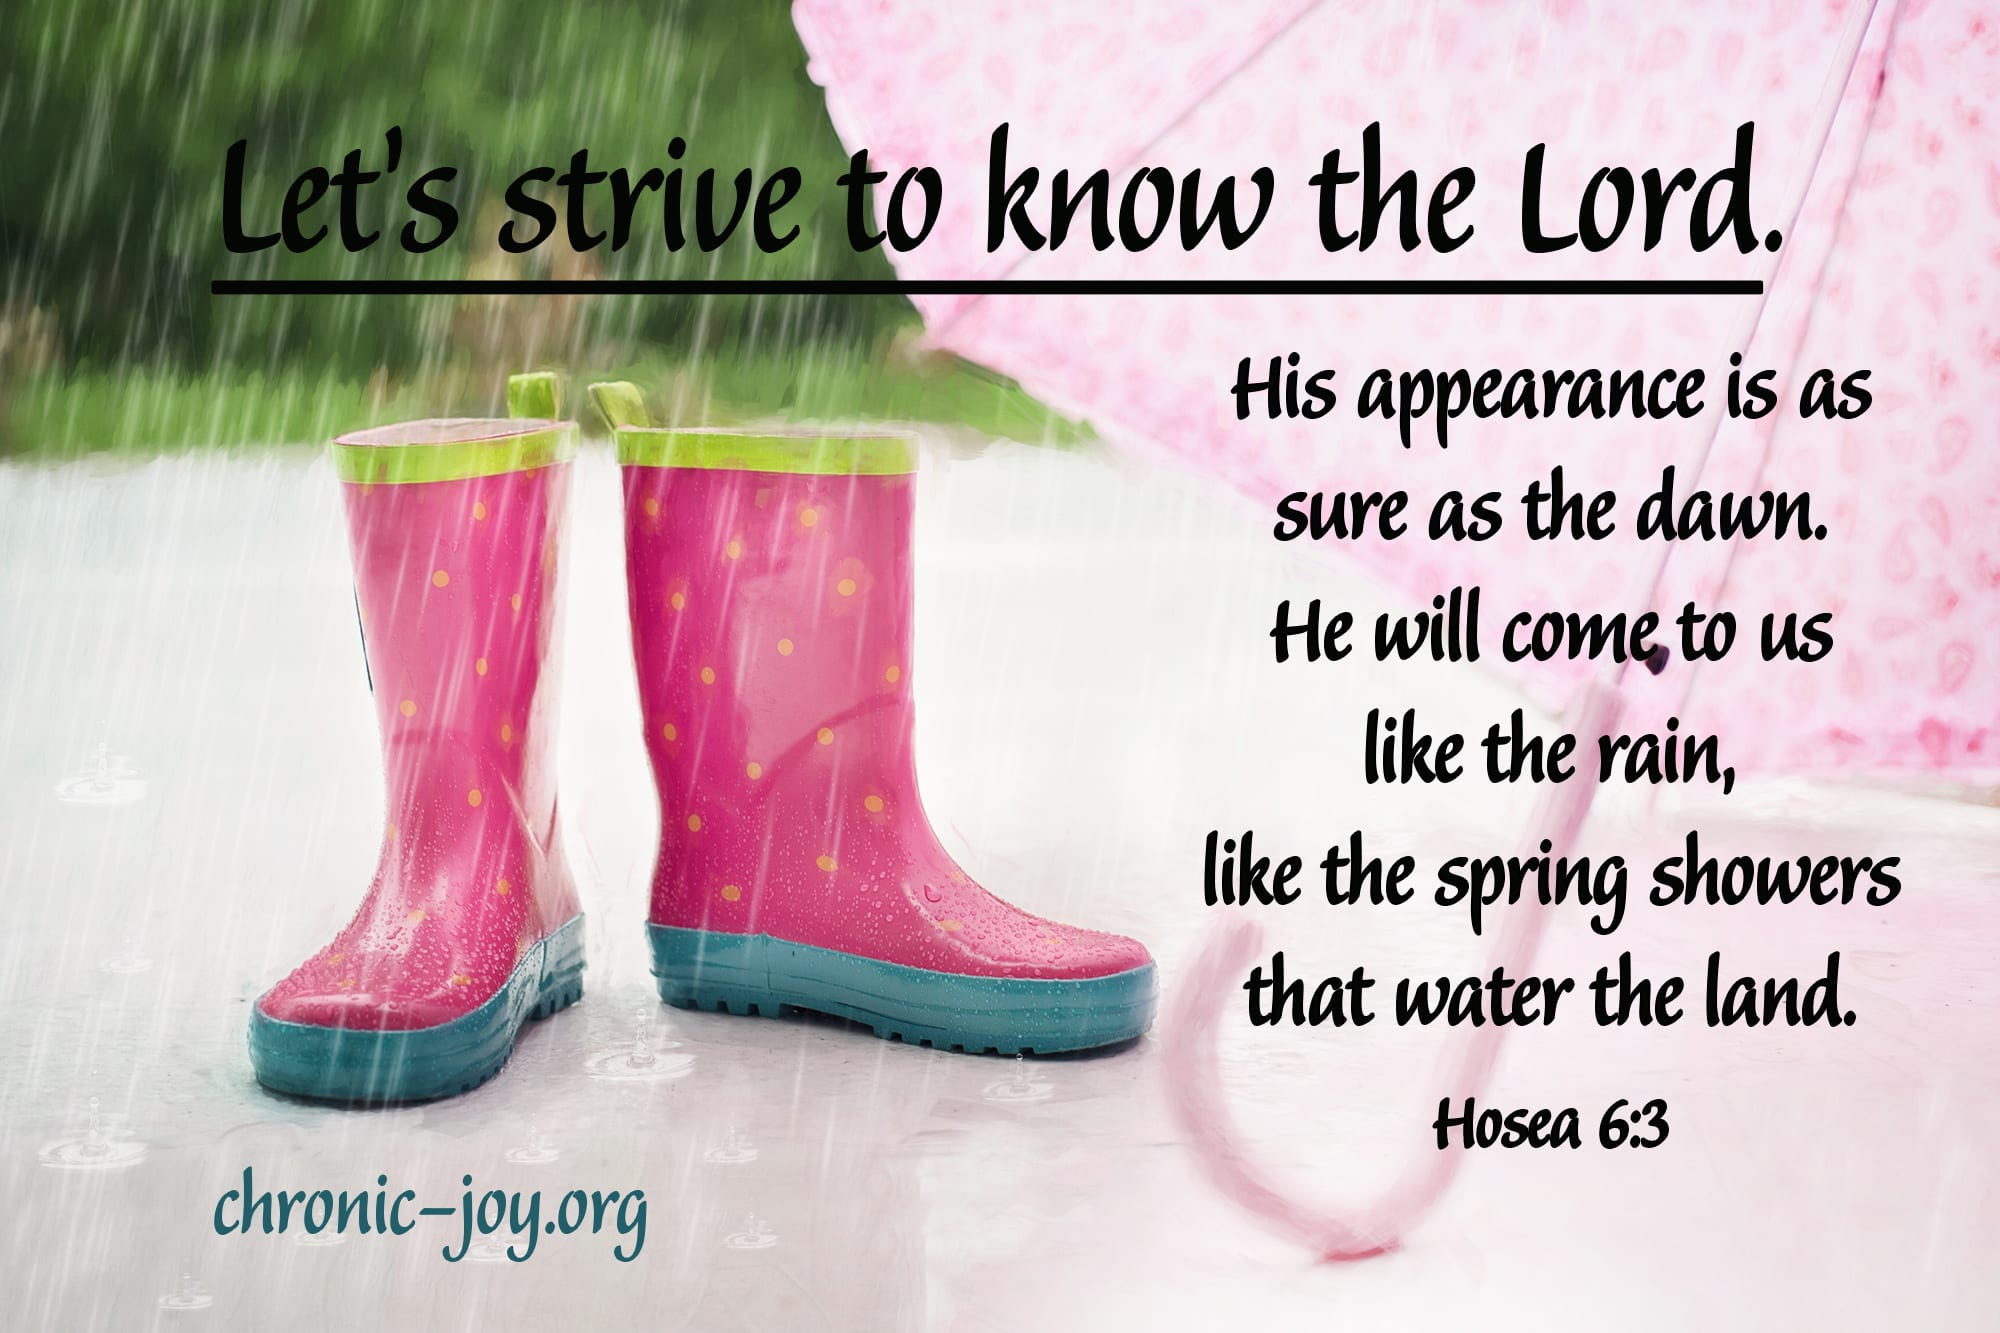 """Let's strive to know the Lord. His appearance is as sure as the dawn. He will come to us like the rain, like the spring showers that water the land."" Hosea 6:3"